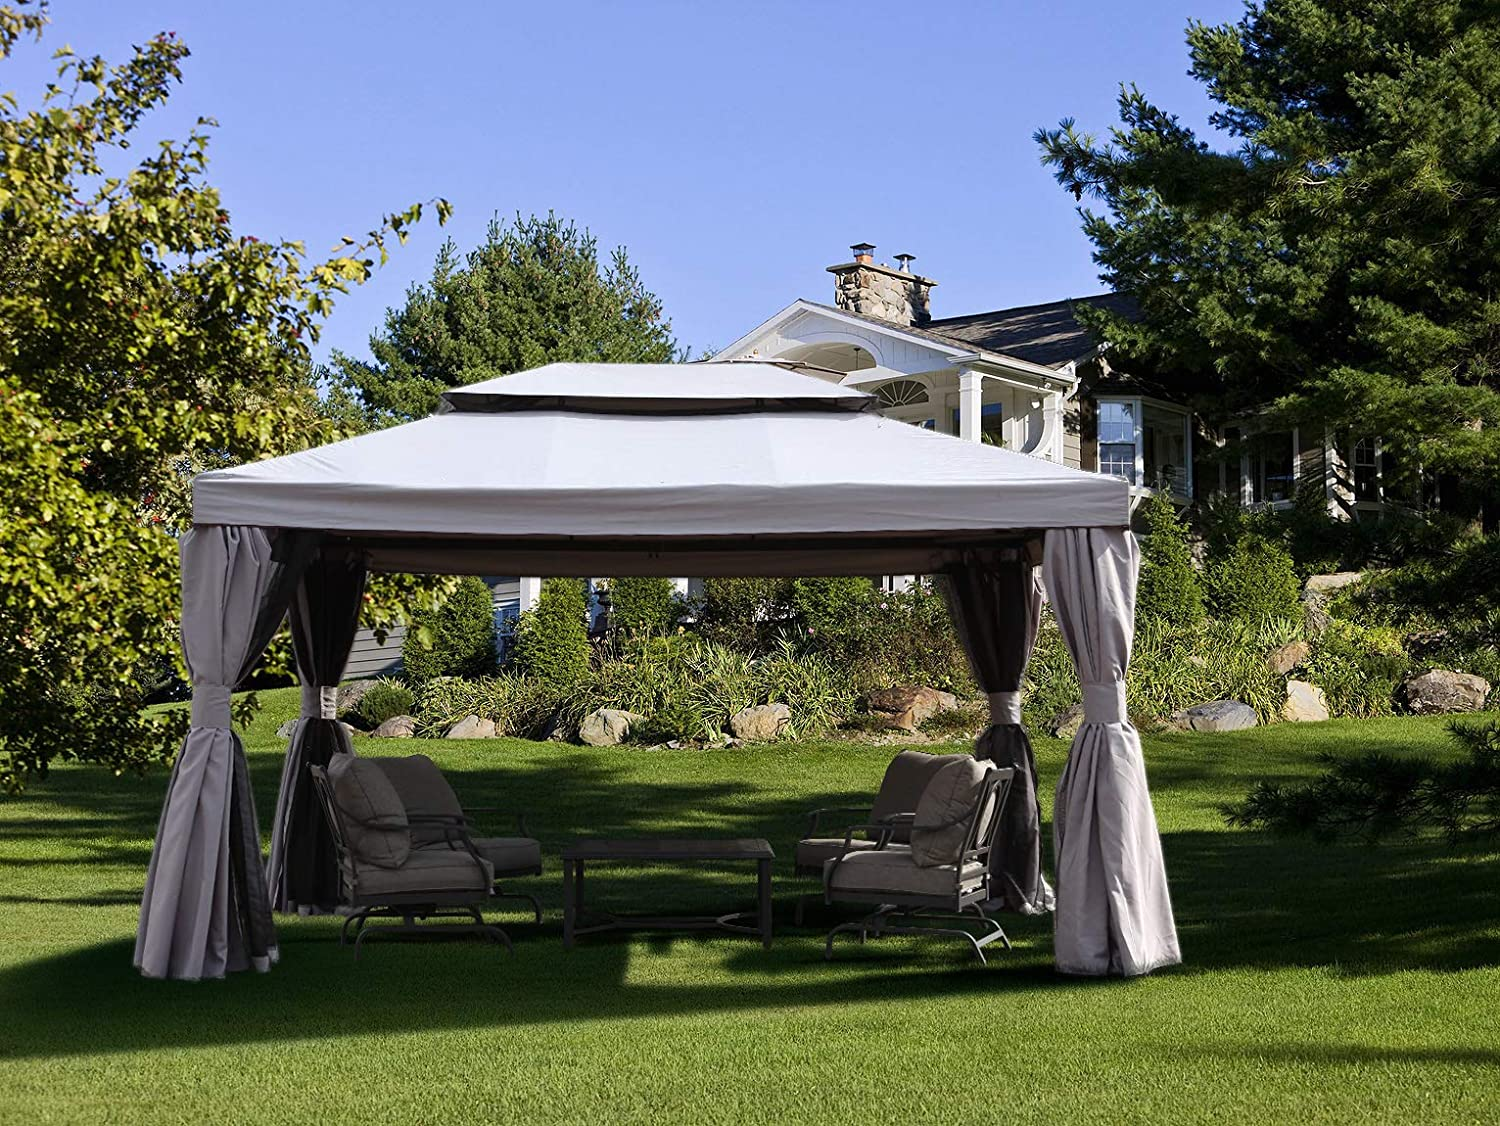 Grand patio Deluxe Gazebos para Patio: Amazon.es: Jardín